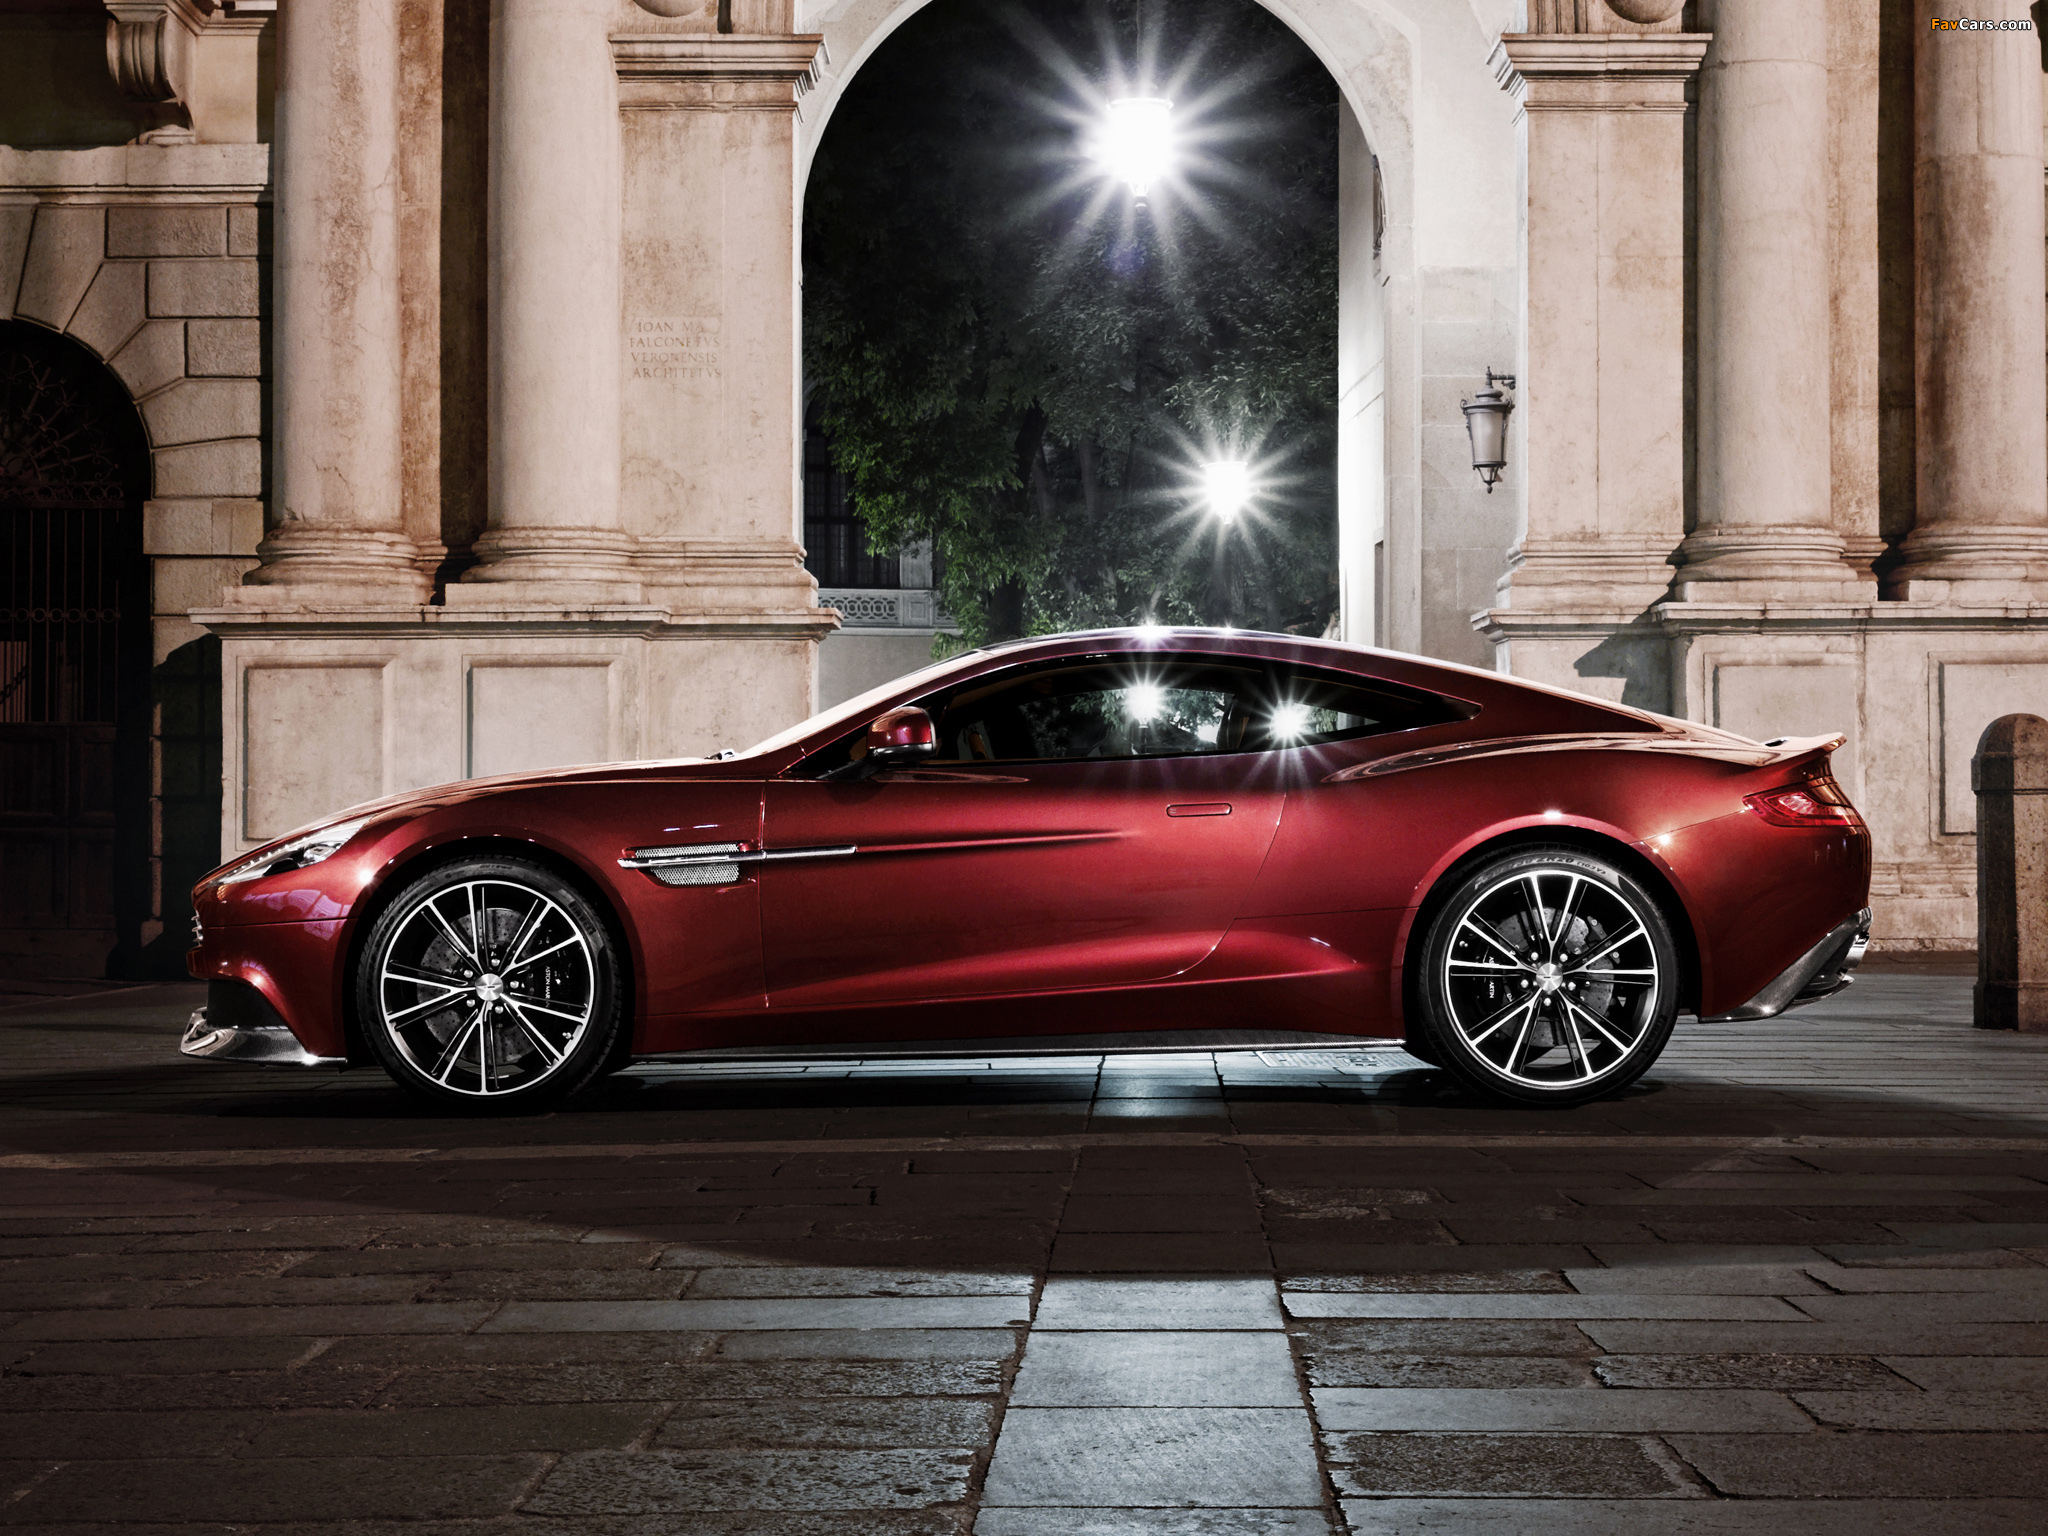 New Aston Martin Vanquish Revealed Pictures likewise New Aston Martin Vanquish Revealed Pictures together with New Aston Martin Vanquish Pictures moreover Default as well Watch. on new aston martin vanquish